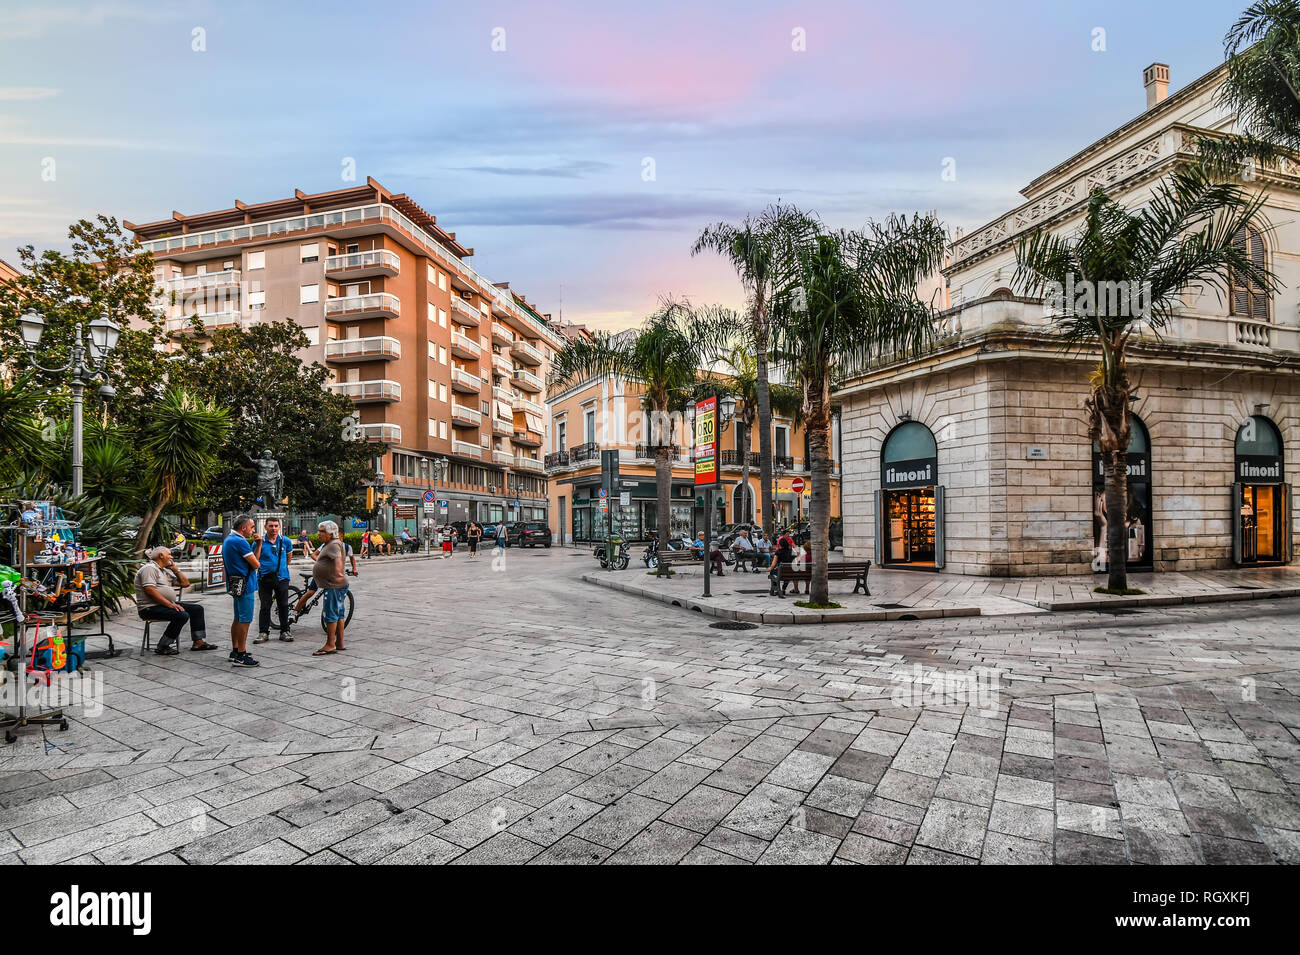 Brindisi, Italy - September 13 2018: Shops line the main street, Corso Umberto, as a group of older Italian men interact on the street. - Stock Image